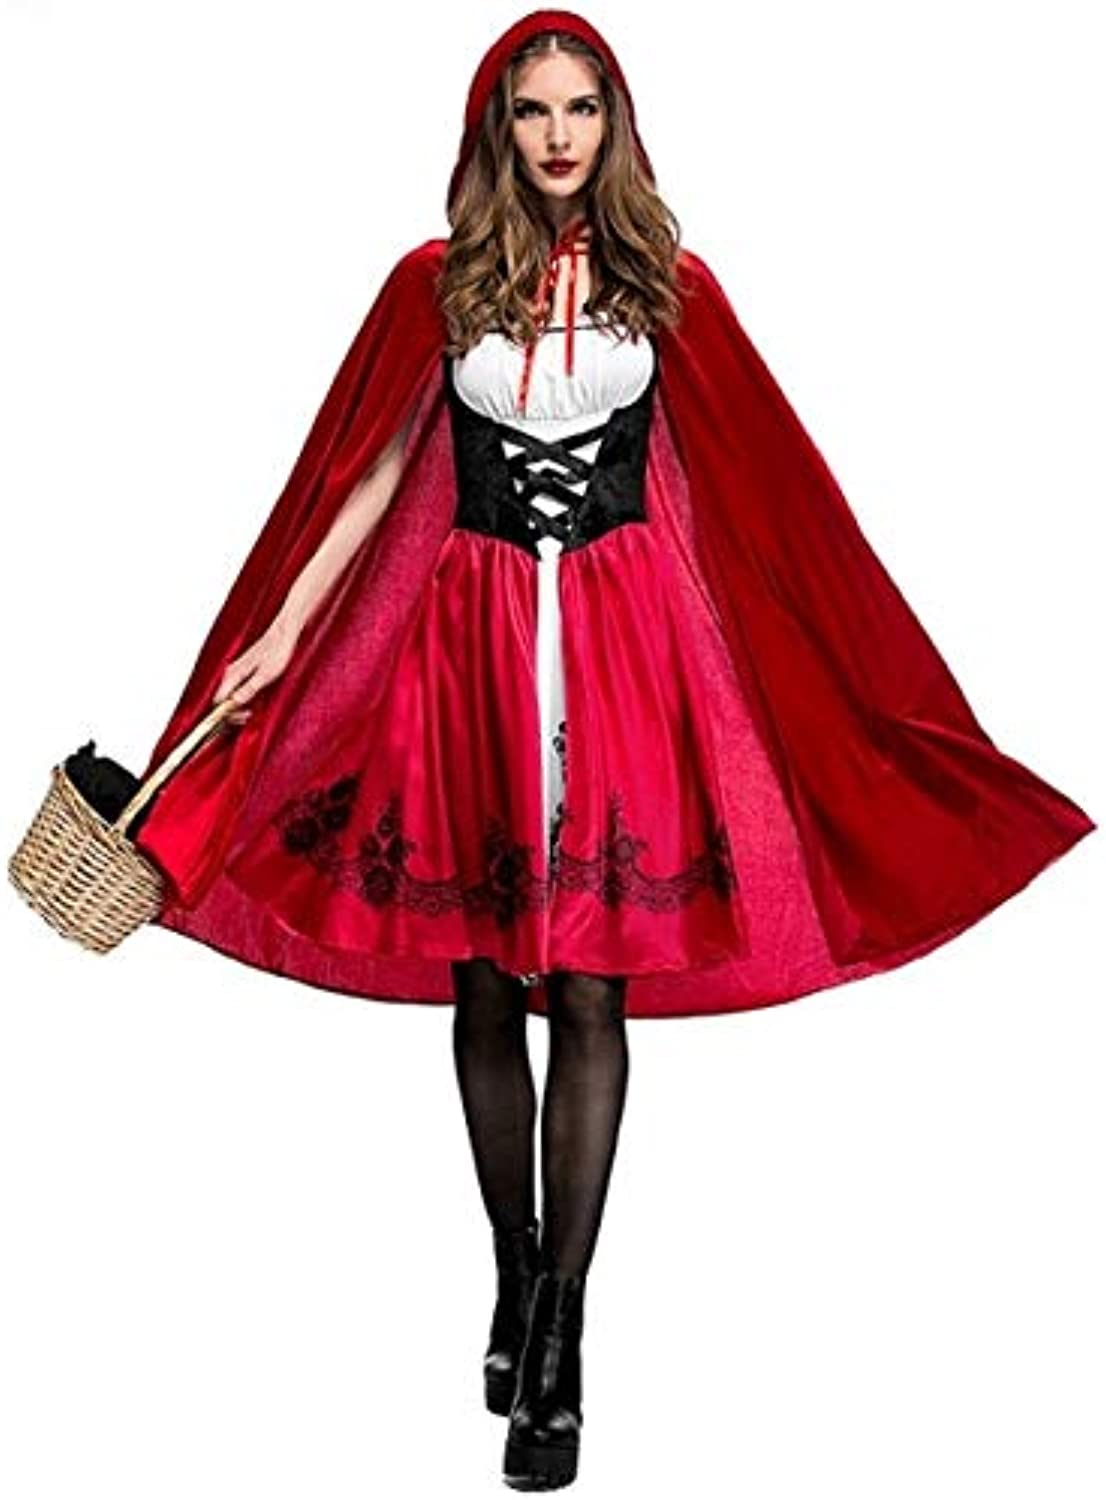 Zooka Hot Sexy Dress Costume Adult Little Red Riding Hood Costume Halloween Cosplay Costumes for Women(S)